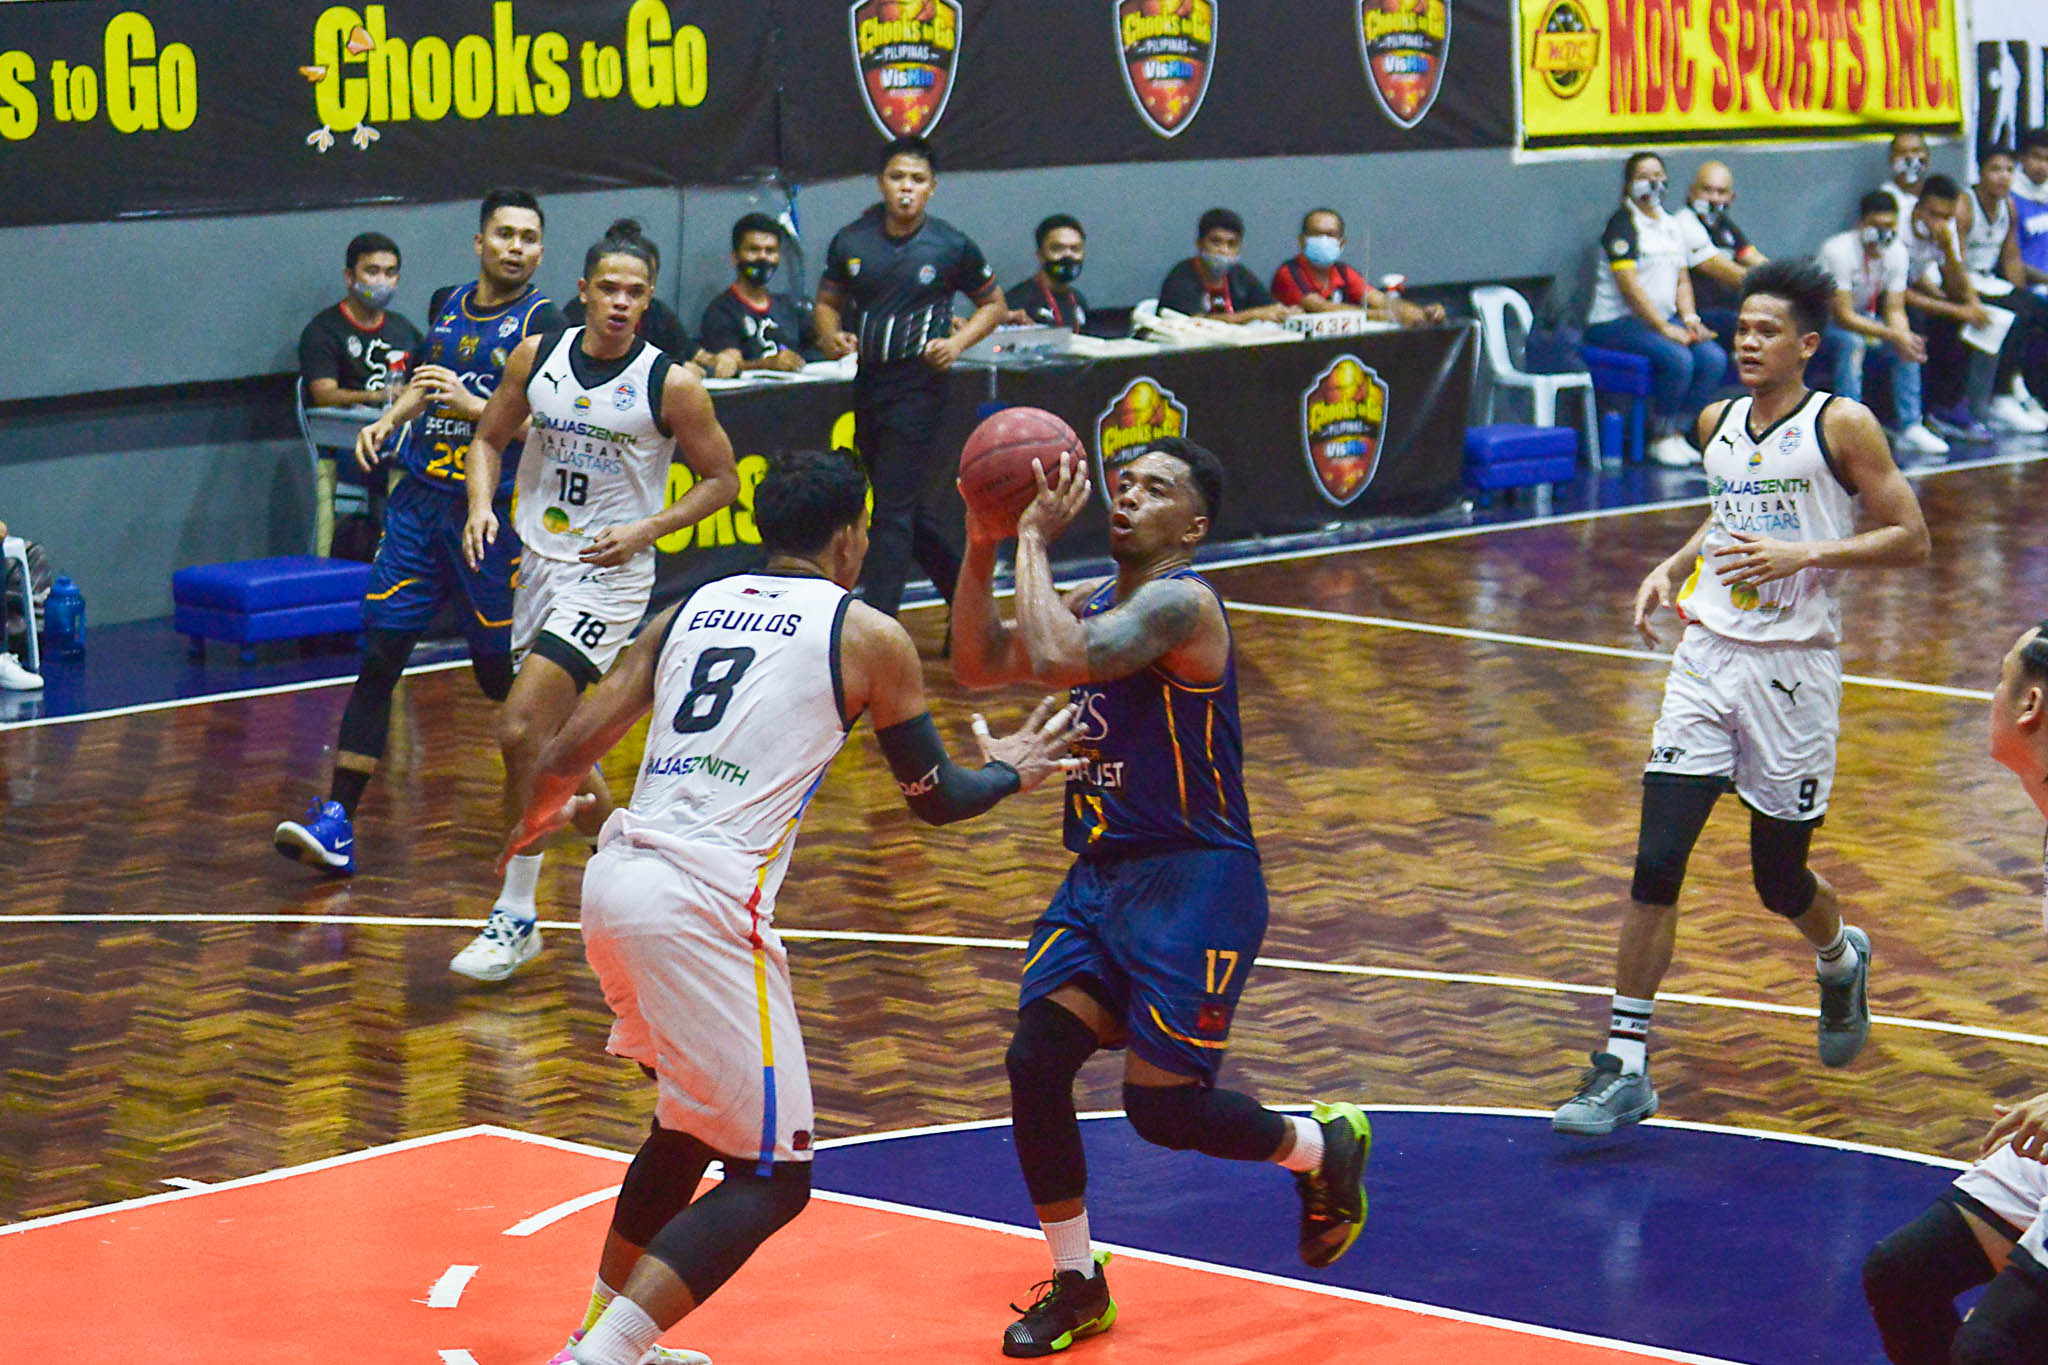 2021-Chooks-to-Go-VisMinCup-Visayas-Finals-Game-3-Talisay-vs-Mandaue-ping-exciminiano-5 Ping Exciminiano grateful to TNT for allowing him to play for KCS Basketball News PBA VisMin Super Cup  - philippine sports news